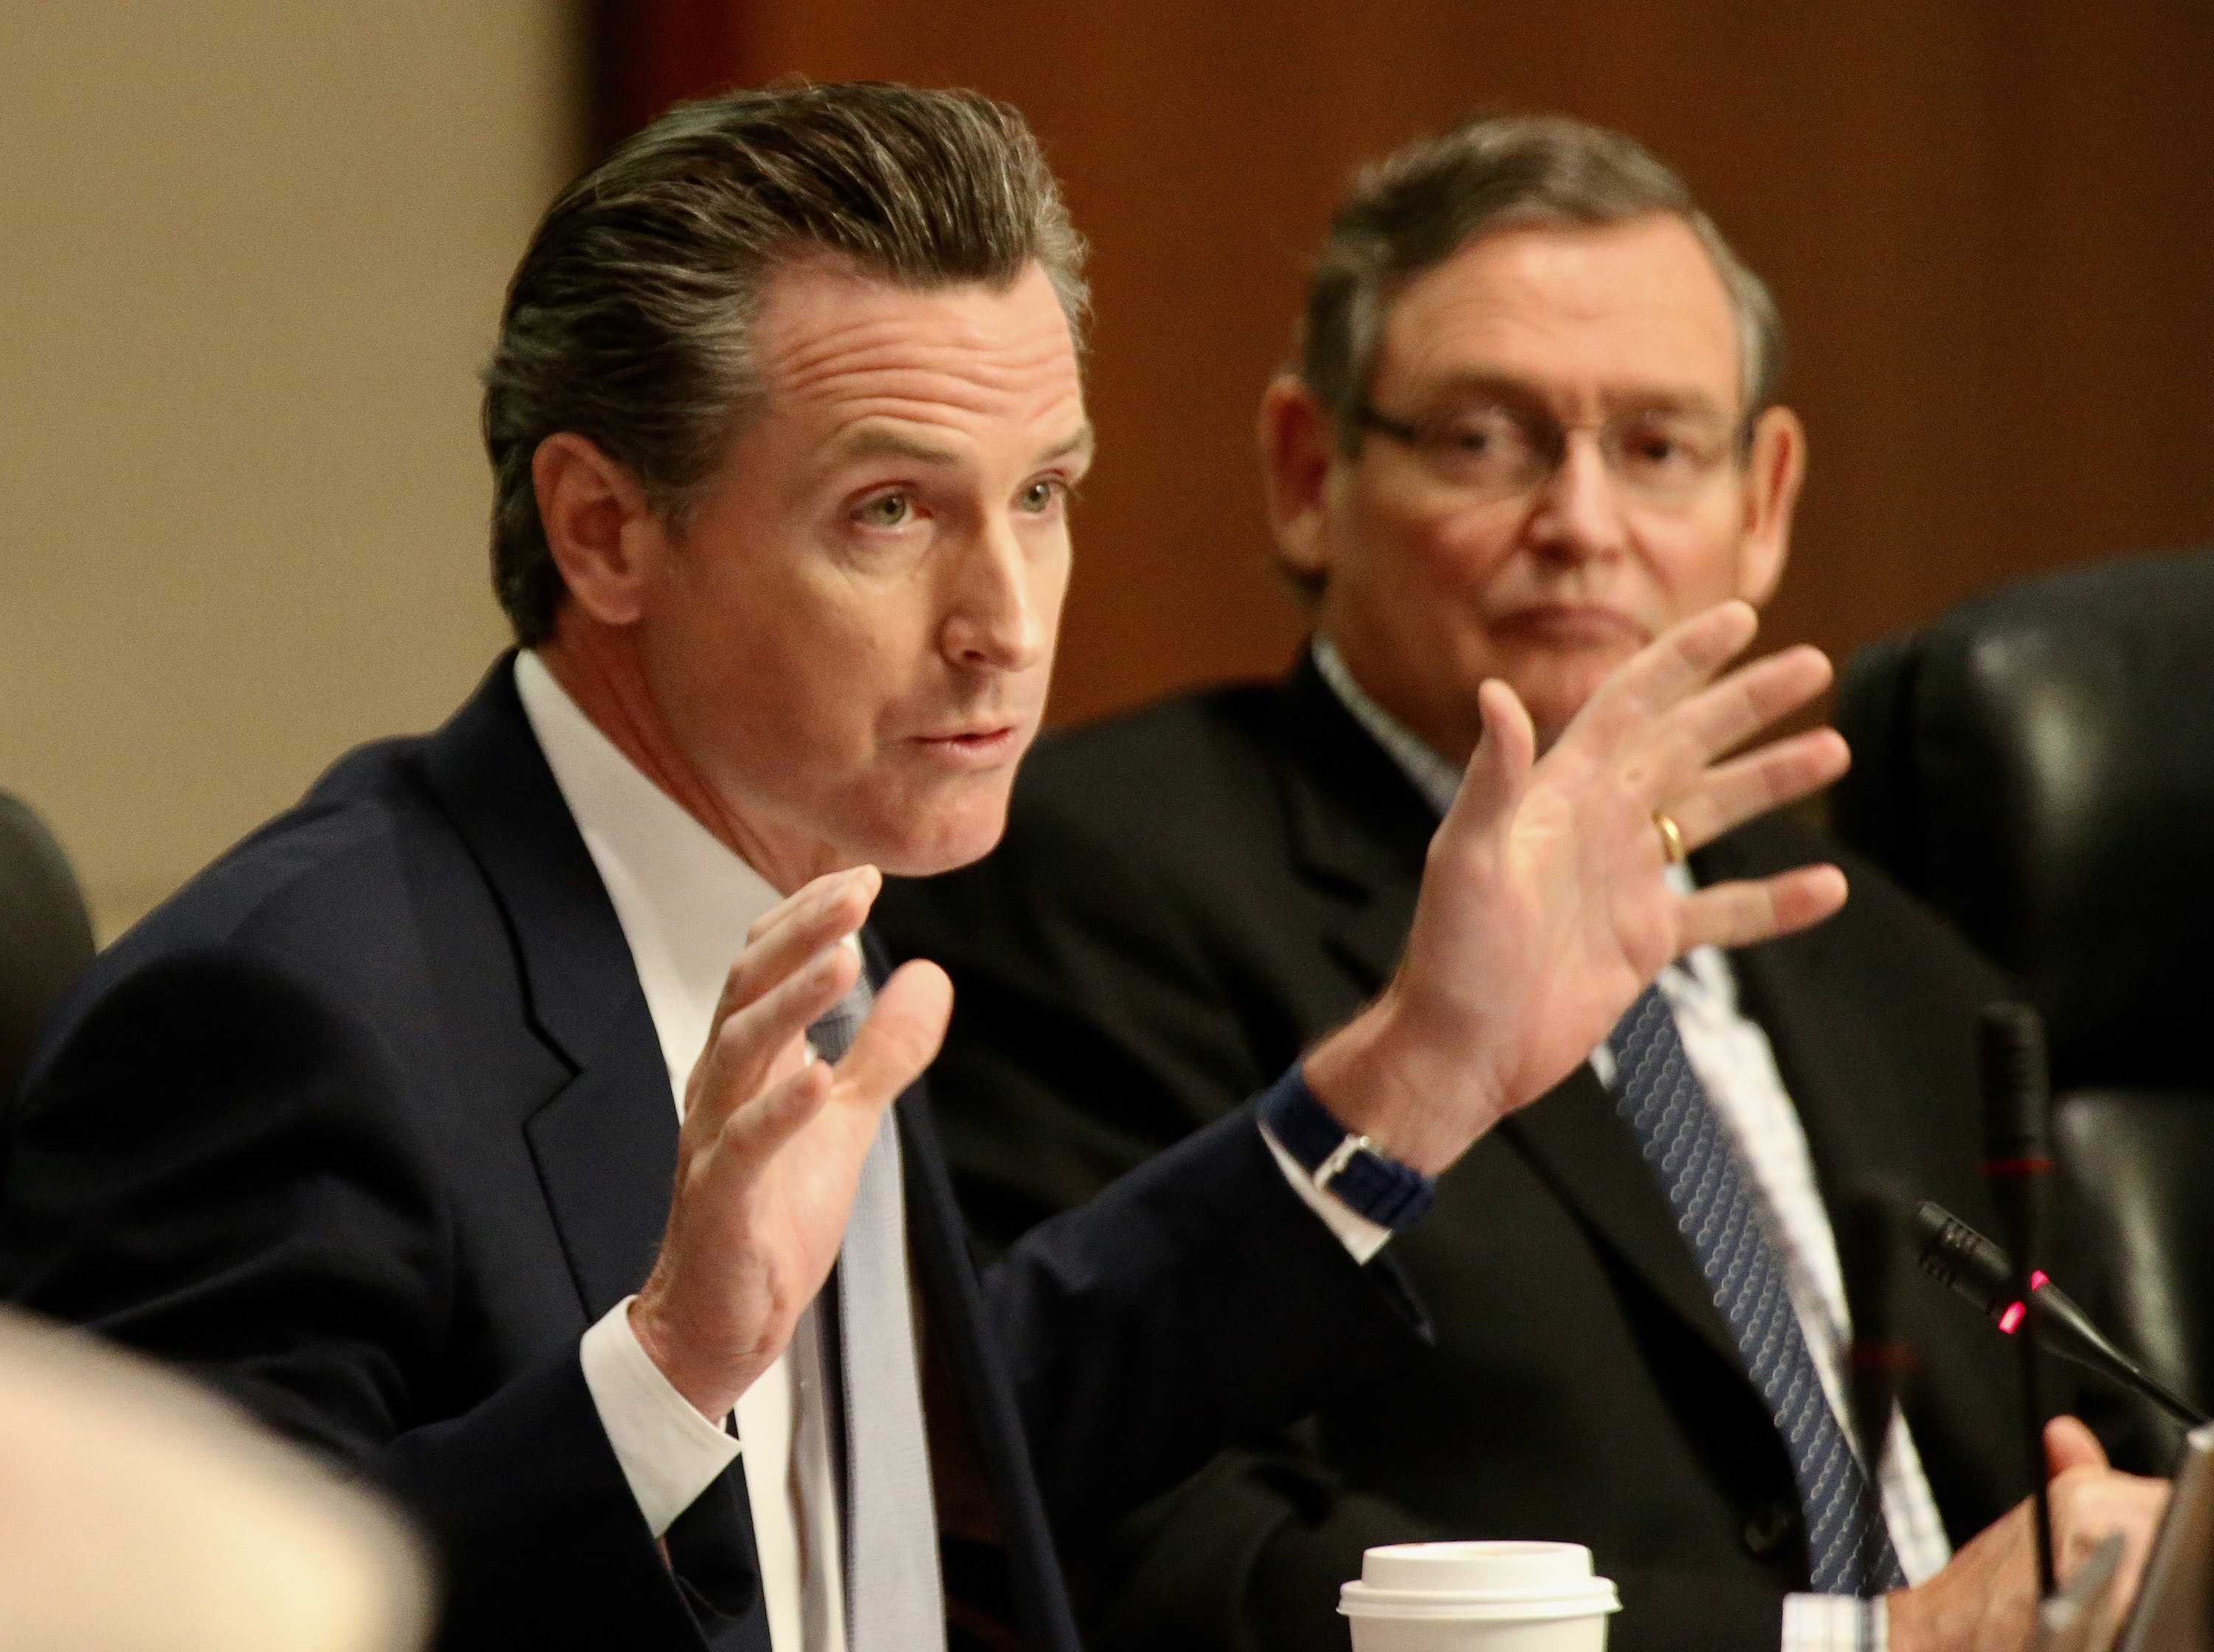 Lt. Gov. Gavin Newsom, left, asks the CSU Board of Trustees to reject the proposed tuition hike Wednesday, March 22, 2017 in Long Beach, Calif. (Iran Khan/Los Angeles Times/TNS)